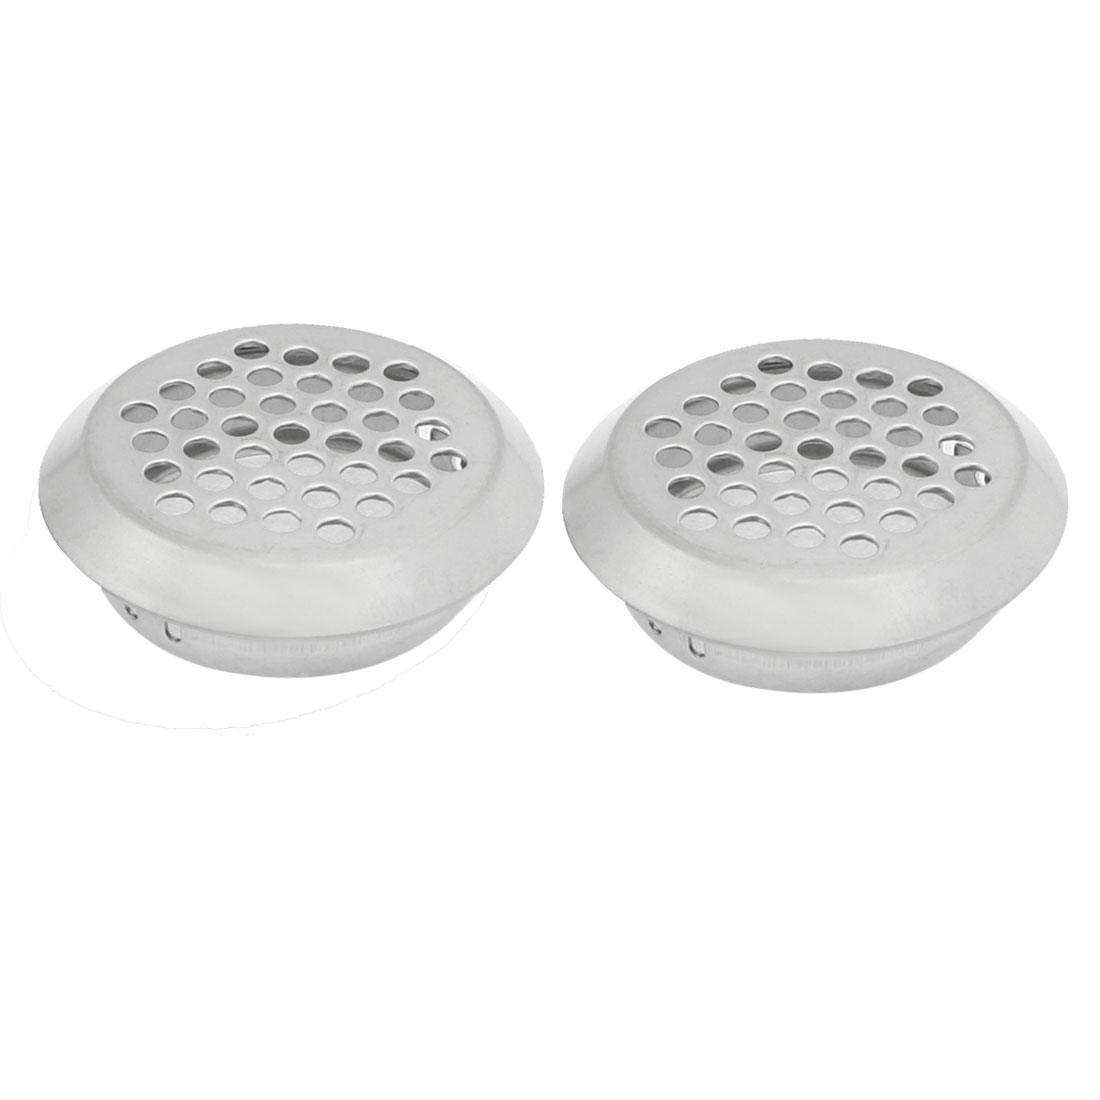 2 Pcs Silver Tone Metal Mesh Hole Round Air Vent Louvers 35mm